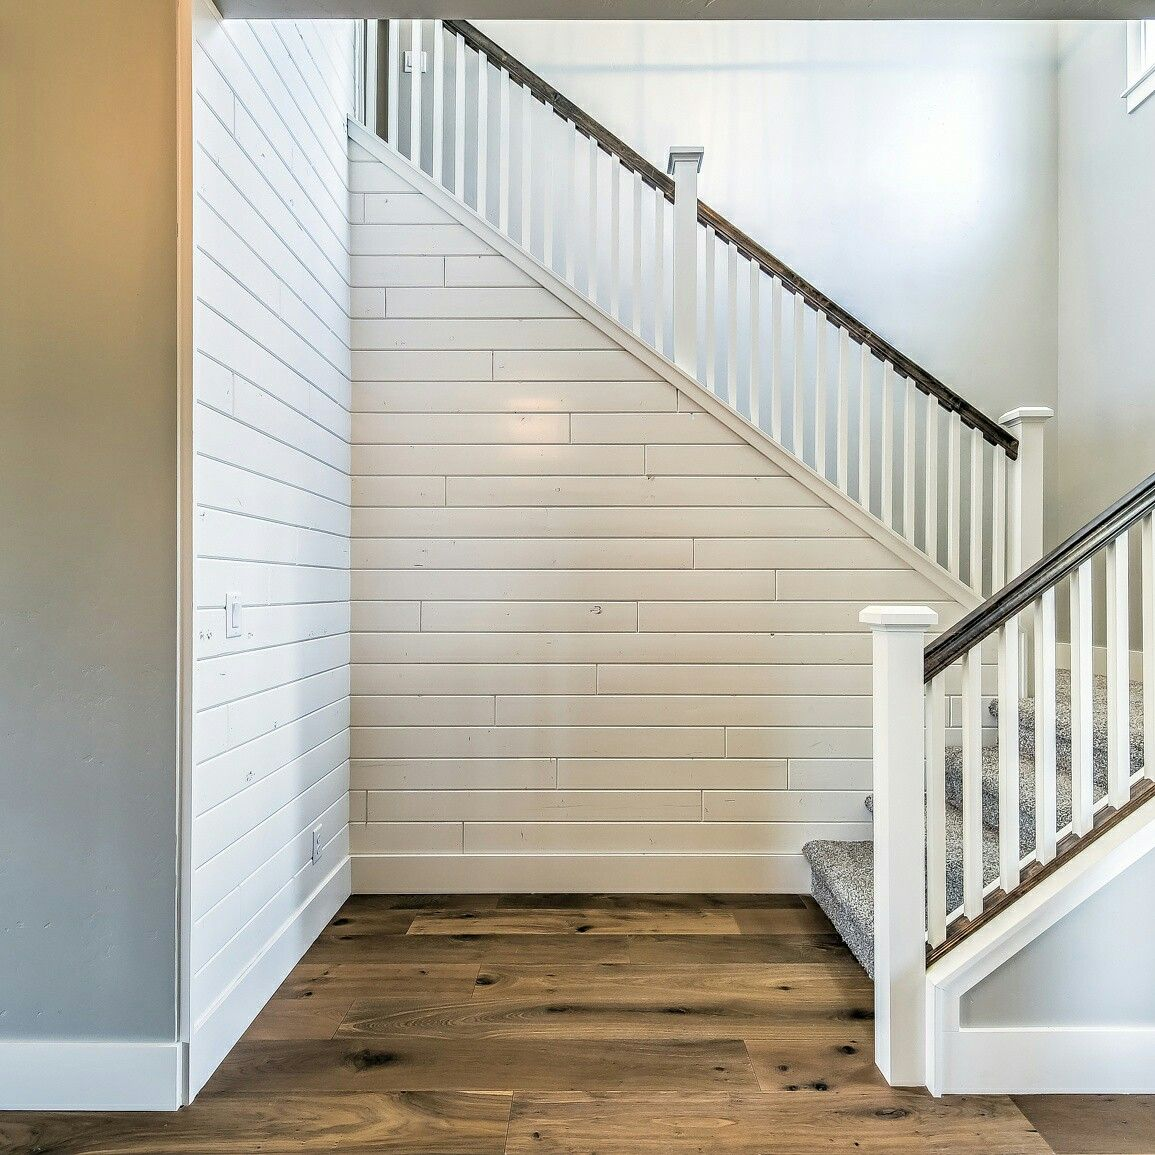 1x8 Wood Accent Wall: Shiplap Accent Wall With Sherwin Williams Westhighland